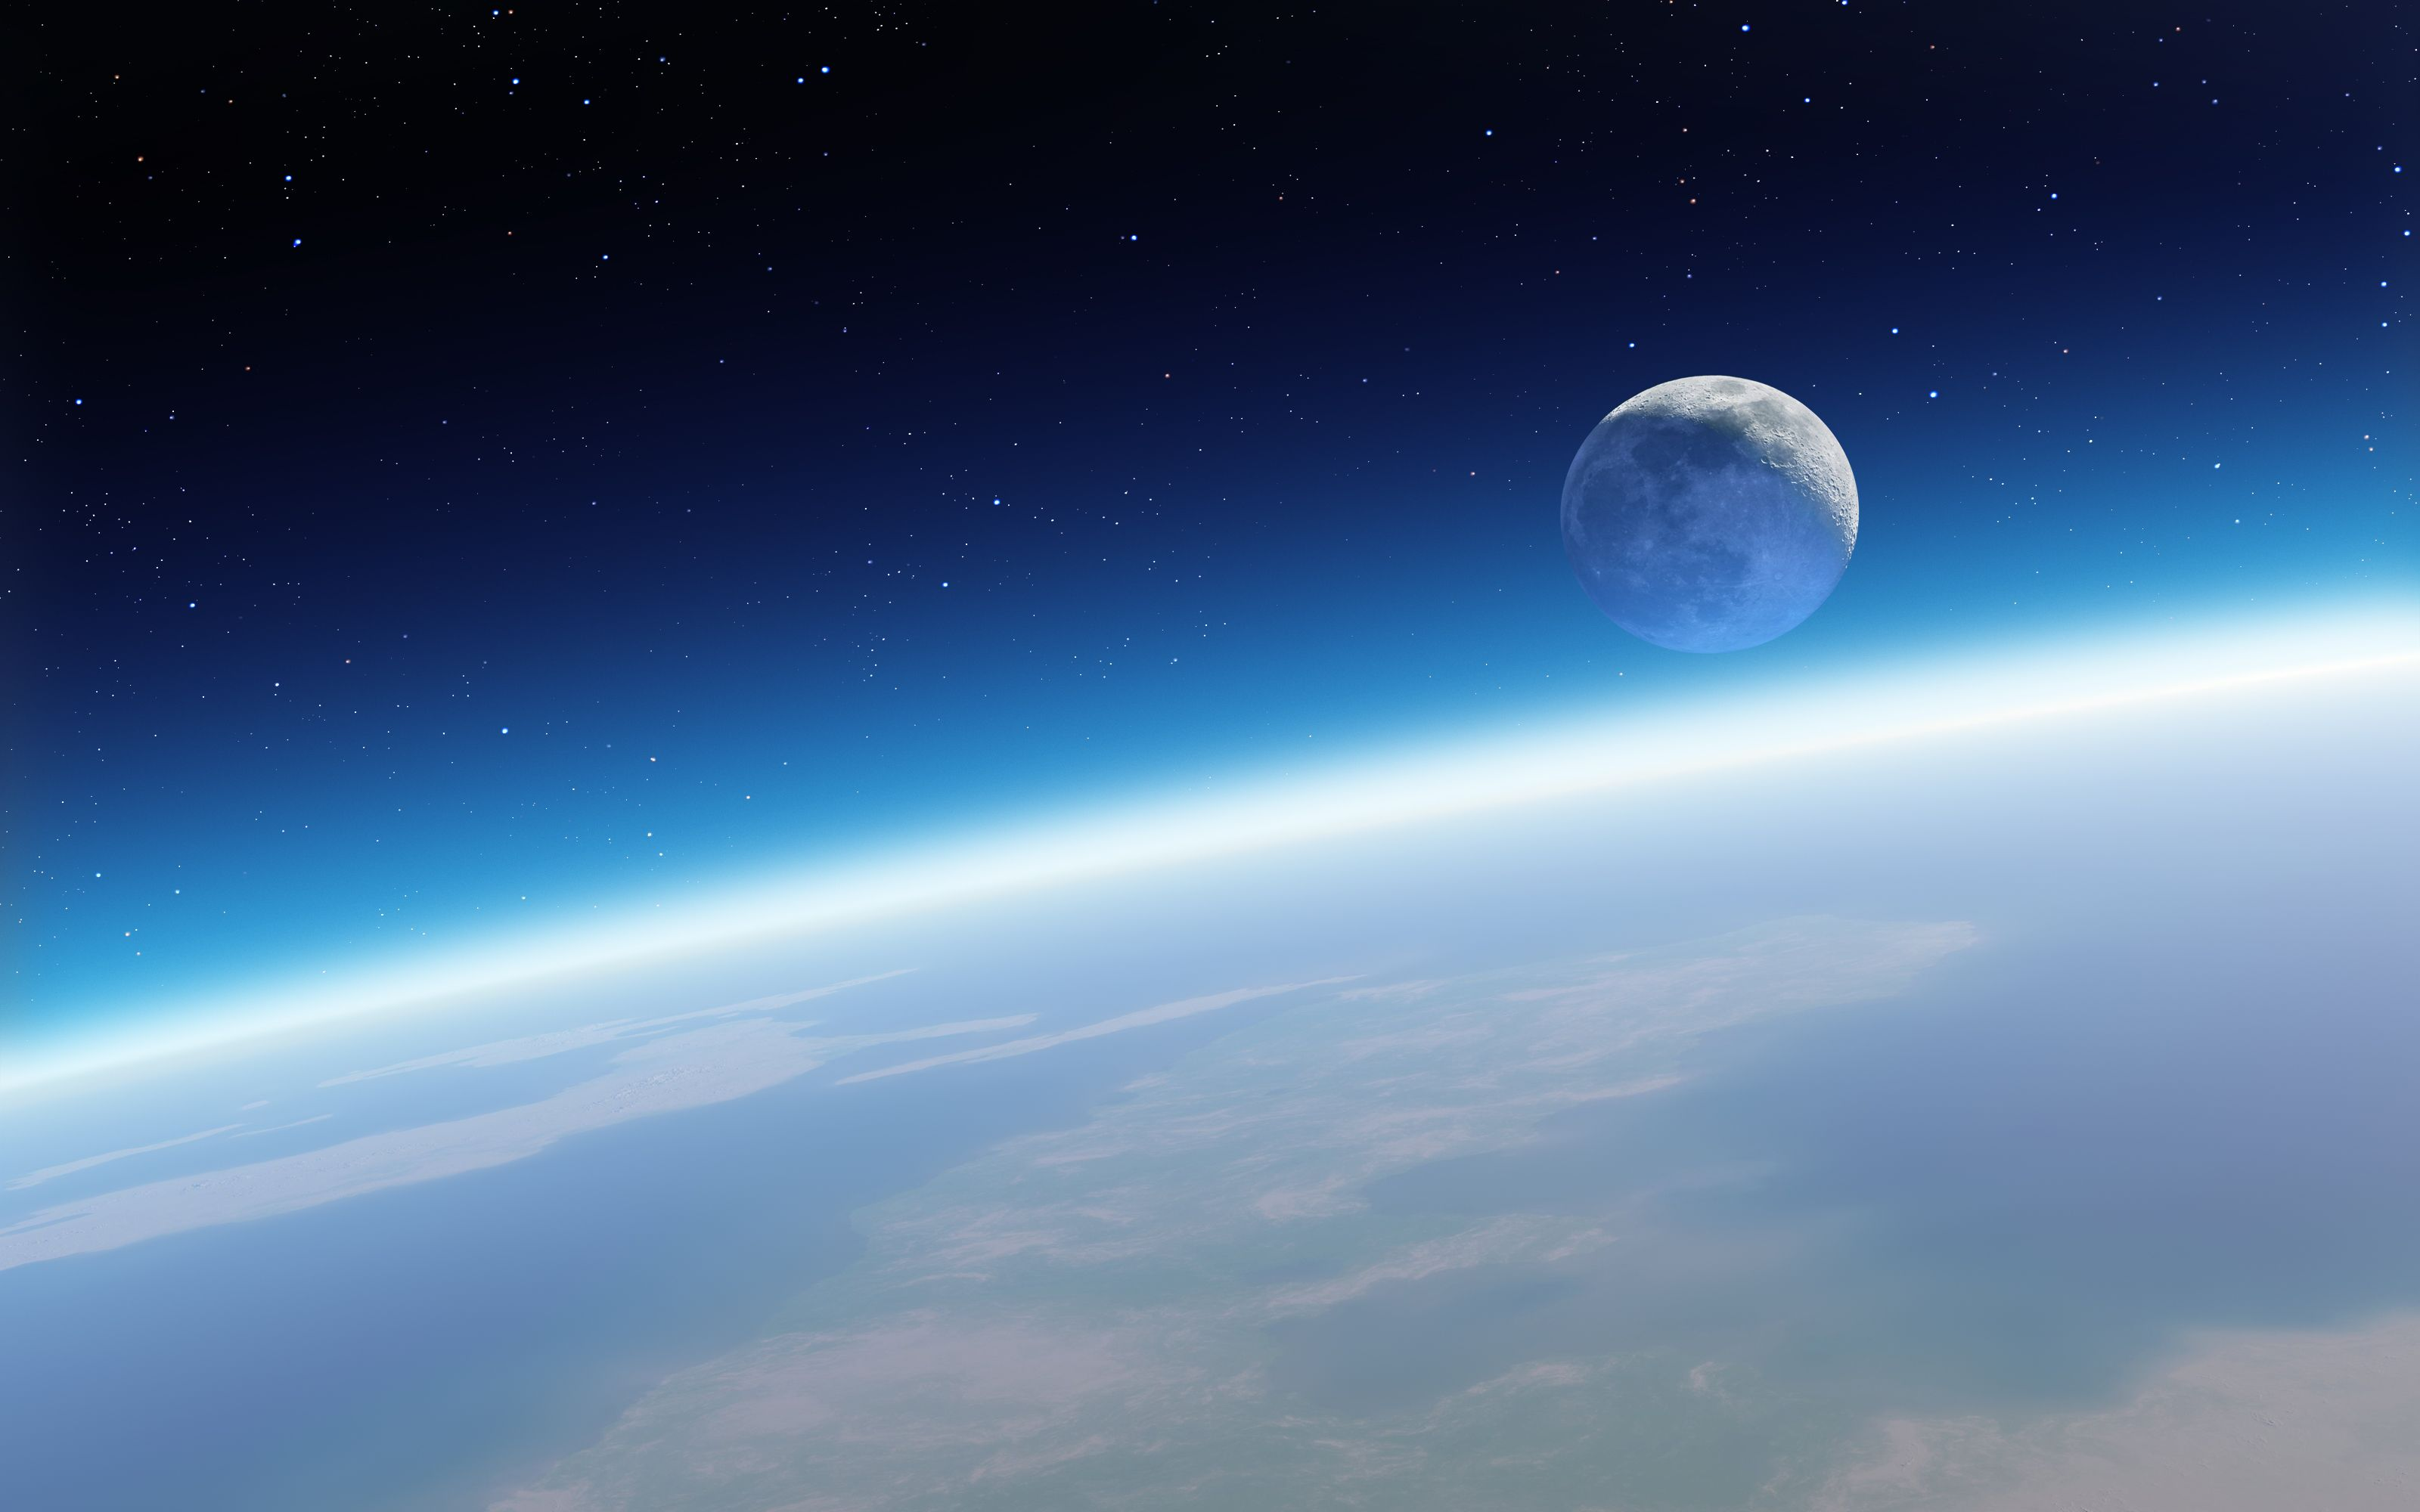 Earth and Moon Wallpapers - Top Free Earth and Moon Backgrounds ...